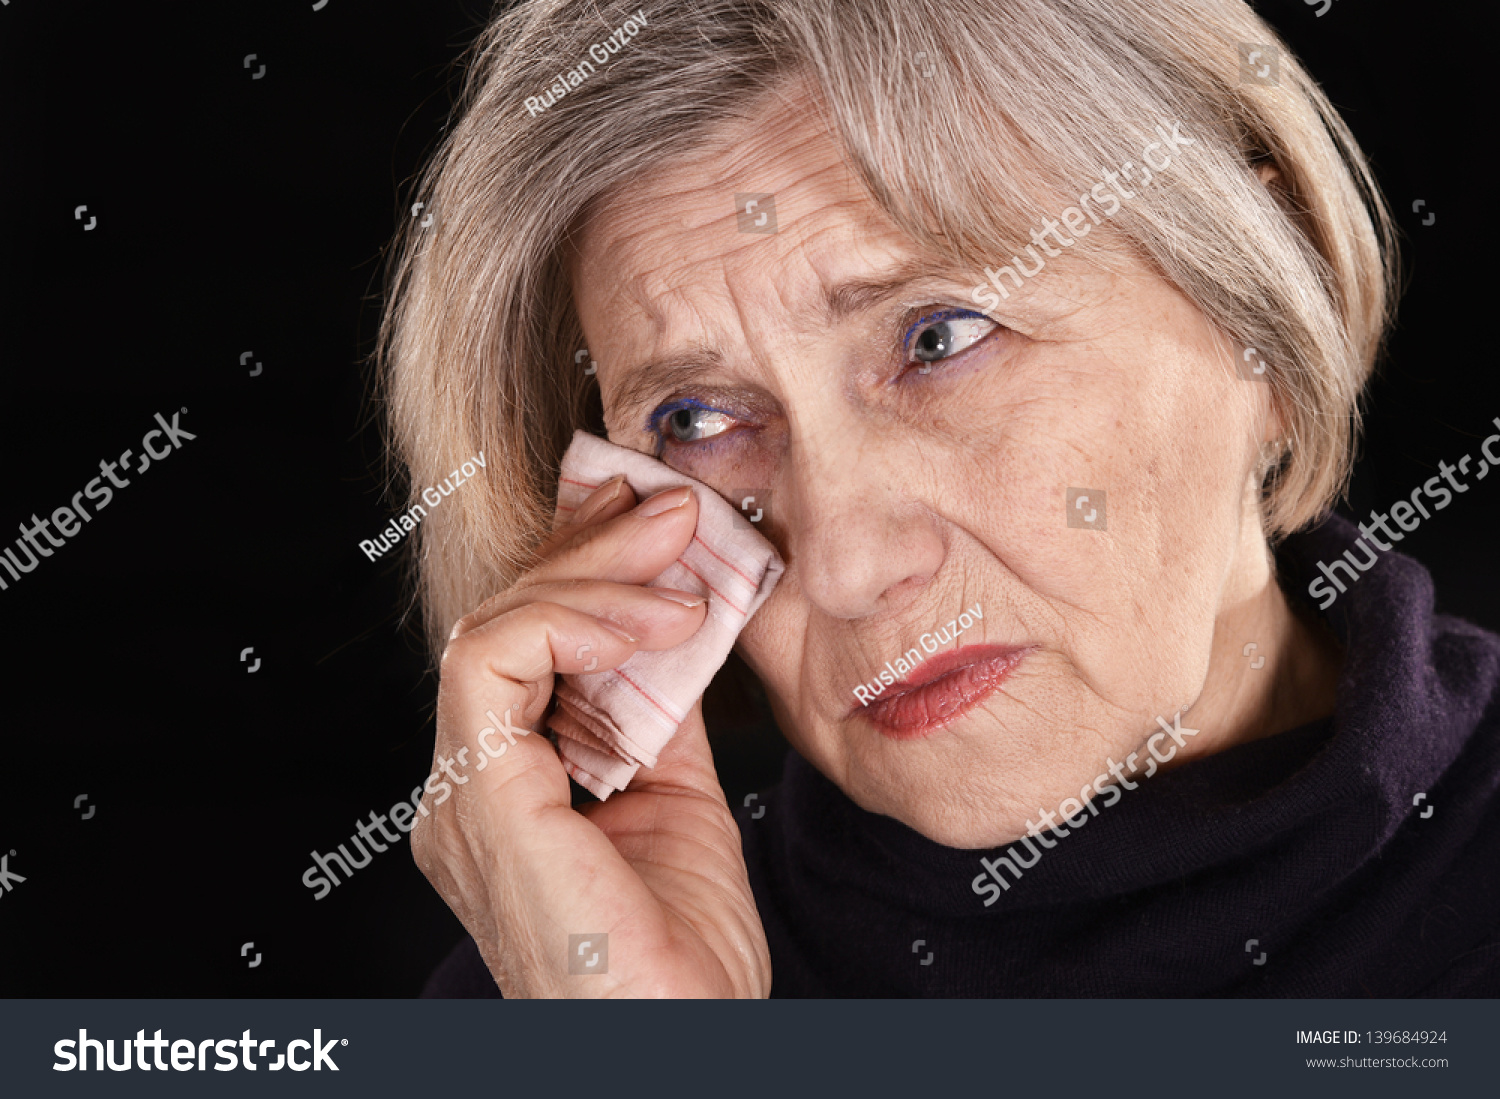 Unhappy senior woman with handkerchief on a black background